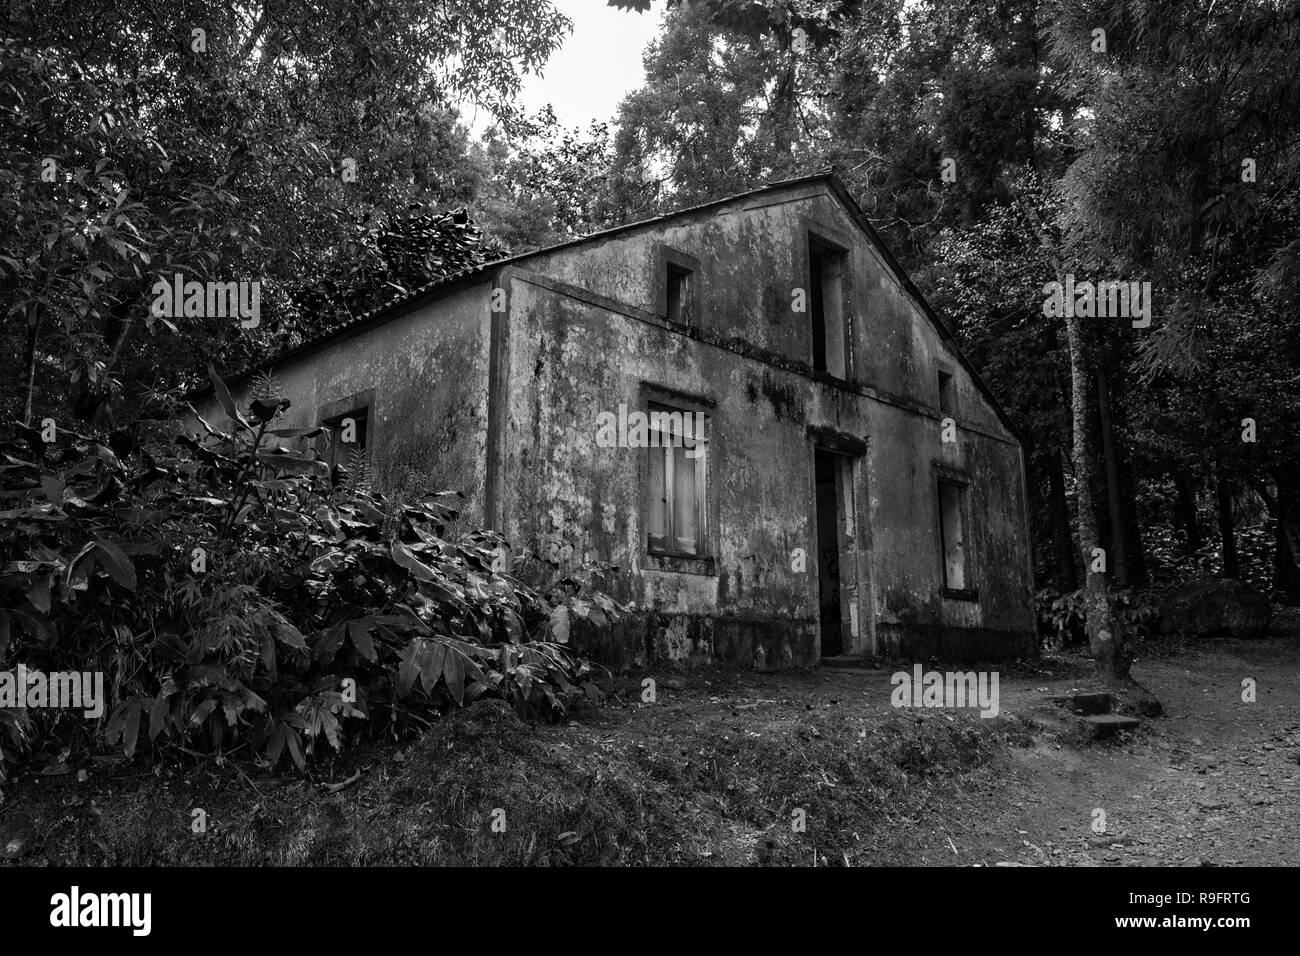 Mysterious old Azores Building in Black and White. - Stock Image